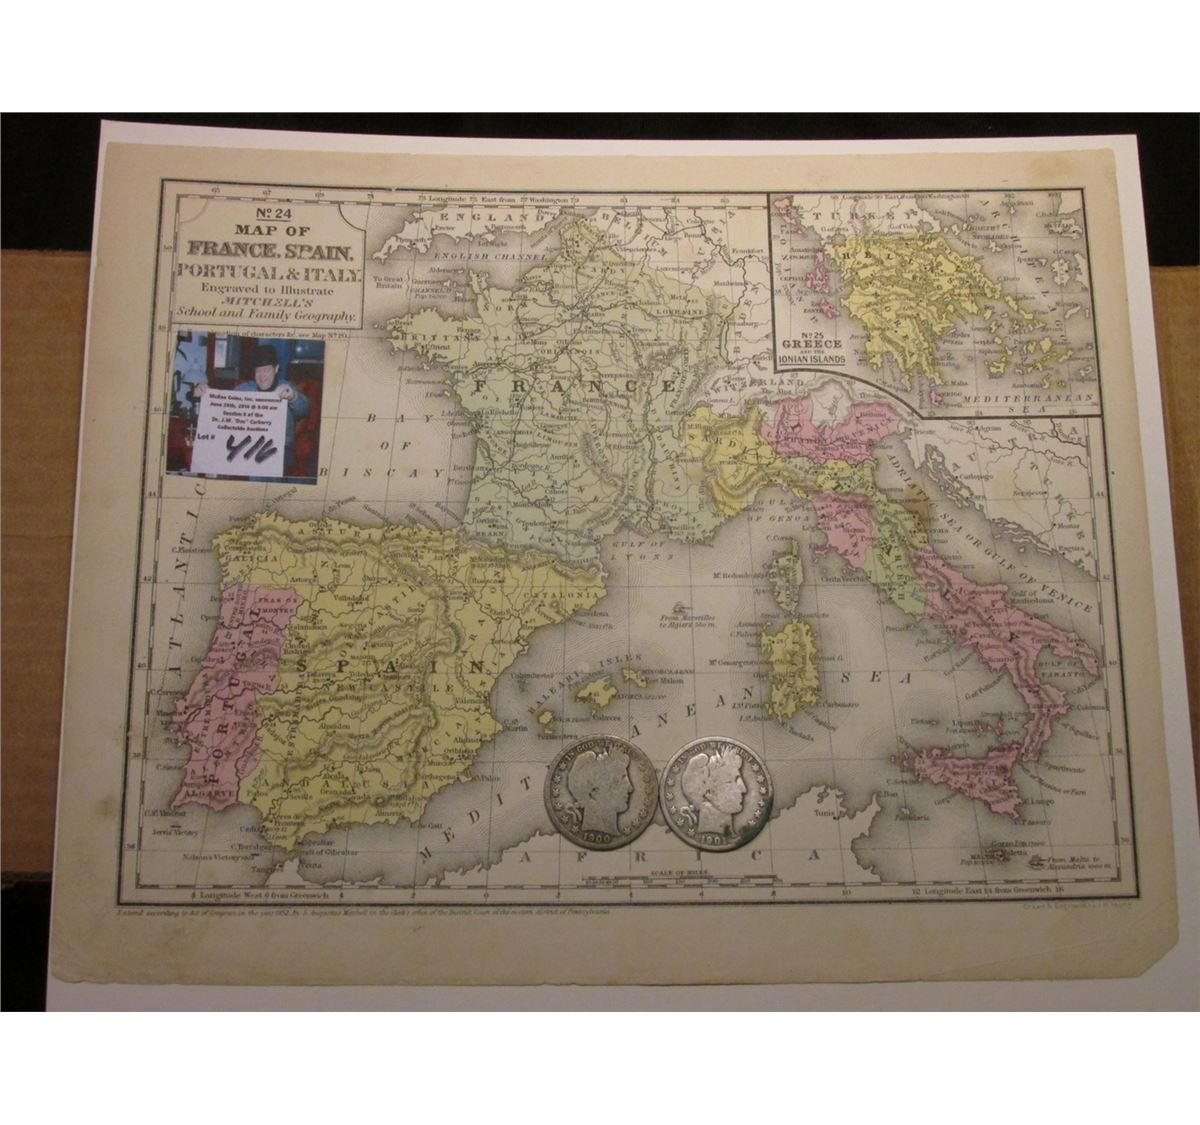 Map Of Spain Portugal And Italy.9 25 X 11 5 Map Of France Spain Portugal Italy Engraved Ready For Framing 1900 P 1901 P